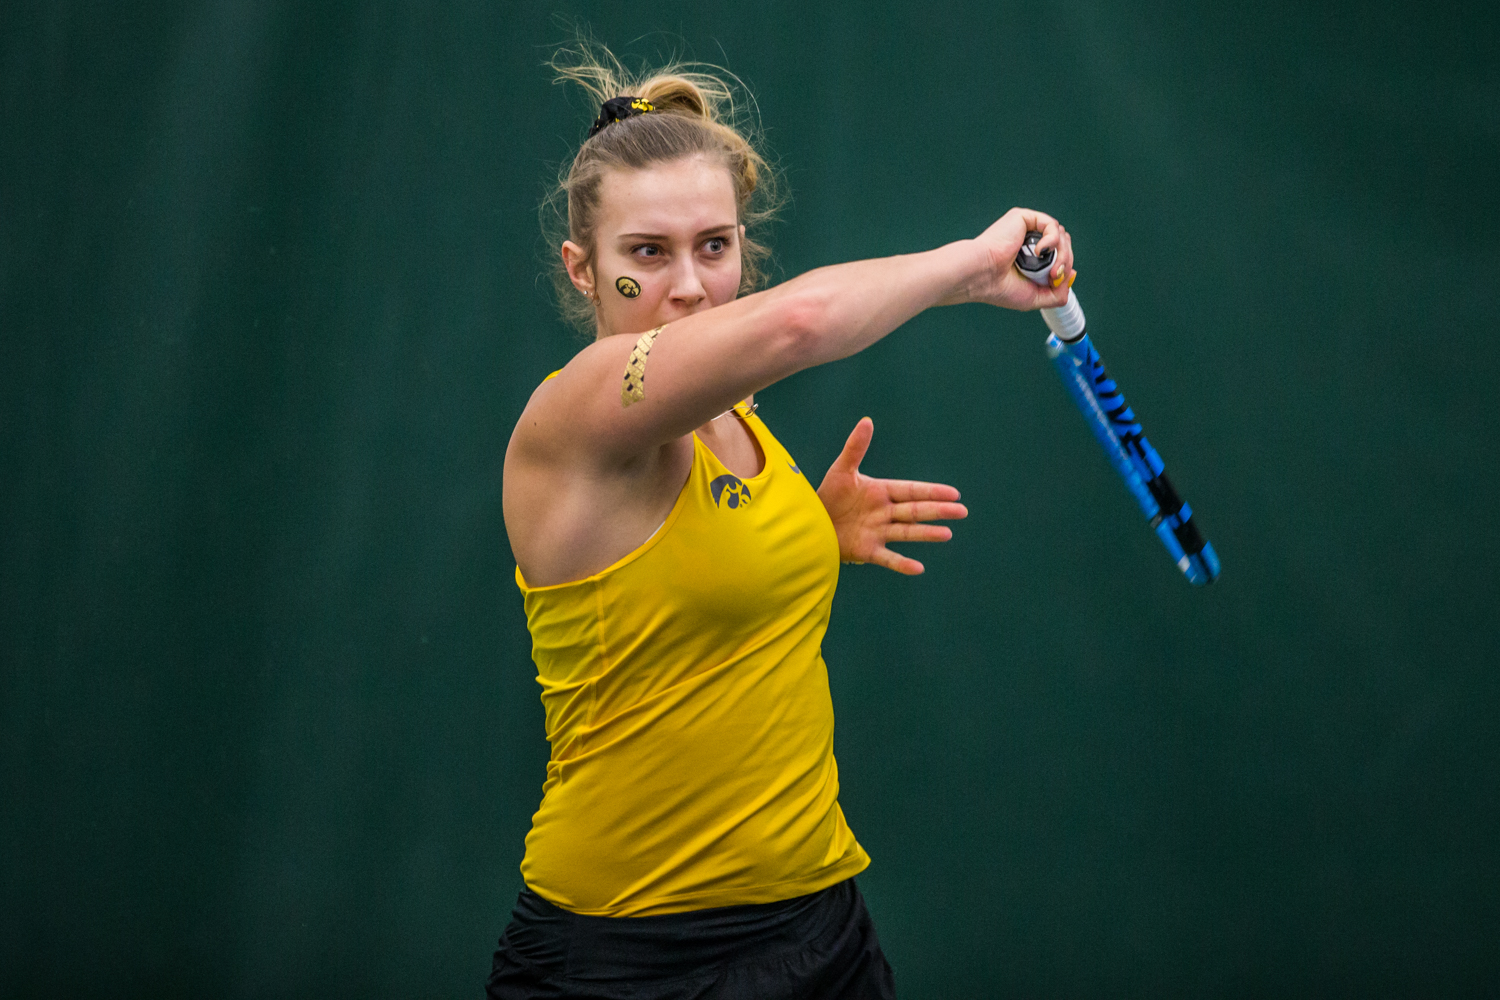 Iowa%27s+Ashleigh+Jacobs+hits+a+forehand+during+a+women%27s+tennis+matchup+between+Iowa+and+Iowa+State+at+the+Hawkeye+Tennis+and+Recreation+Complex+on+Friday%2C+February+8%2C+2019.++The+Hawkeyes+dropped+the+doubles+point+but+swept+singles+matches%2C+defeating+the+Cyclones+4-1.